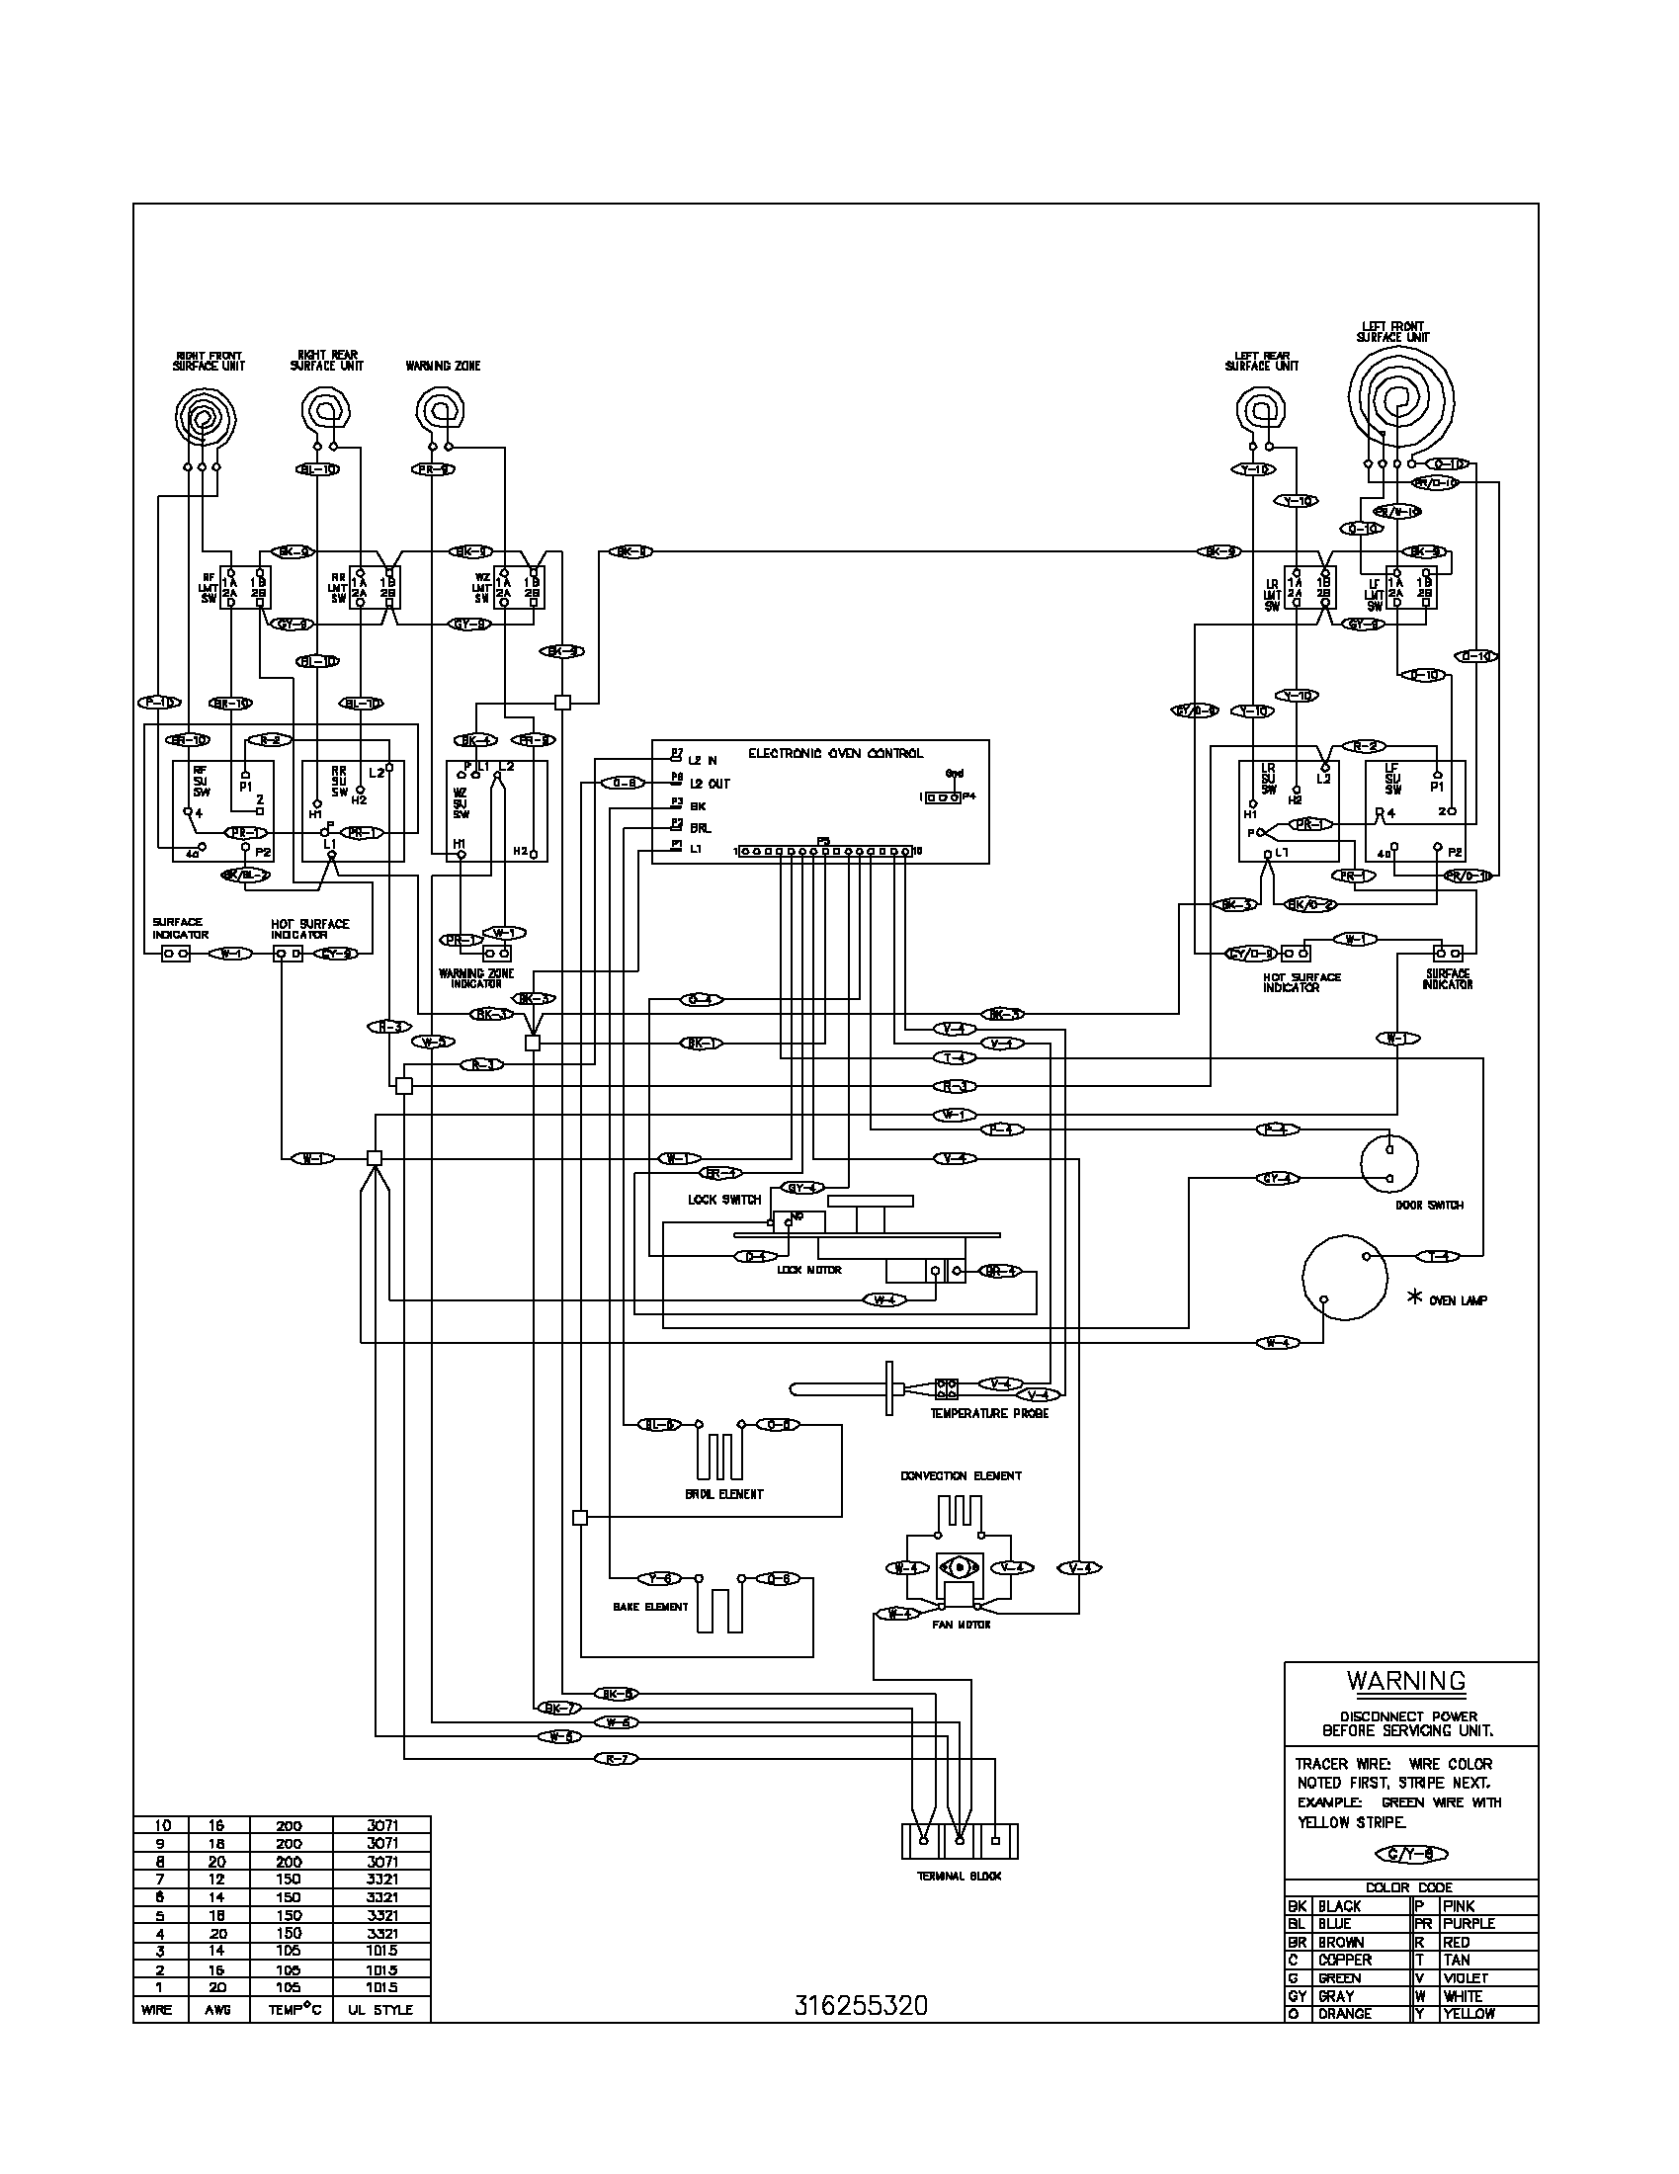 ge electric stove wiring diagram wiring diagrams old ge refrigerator wiring diagram discover your